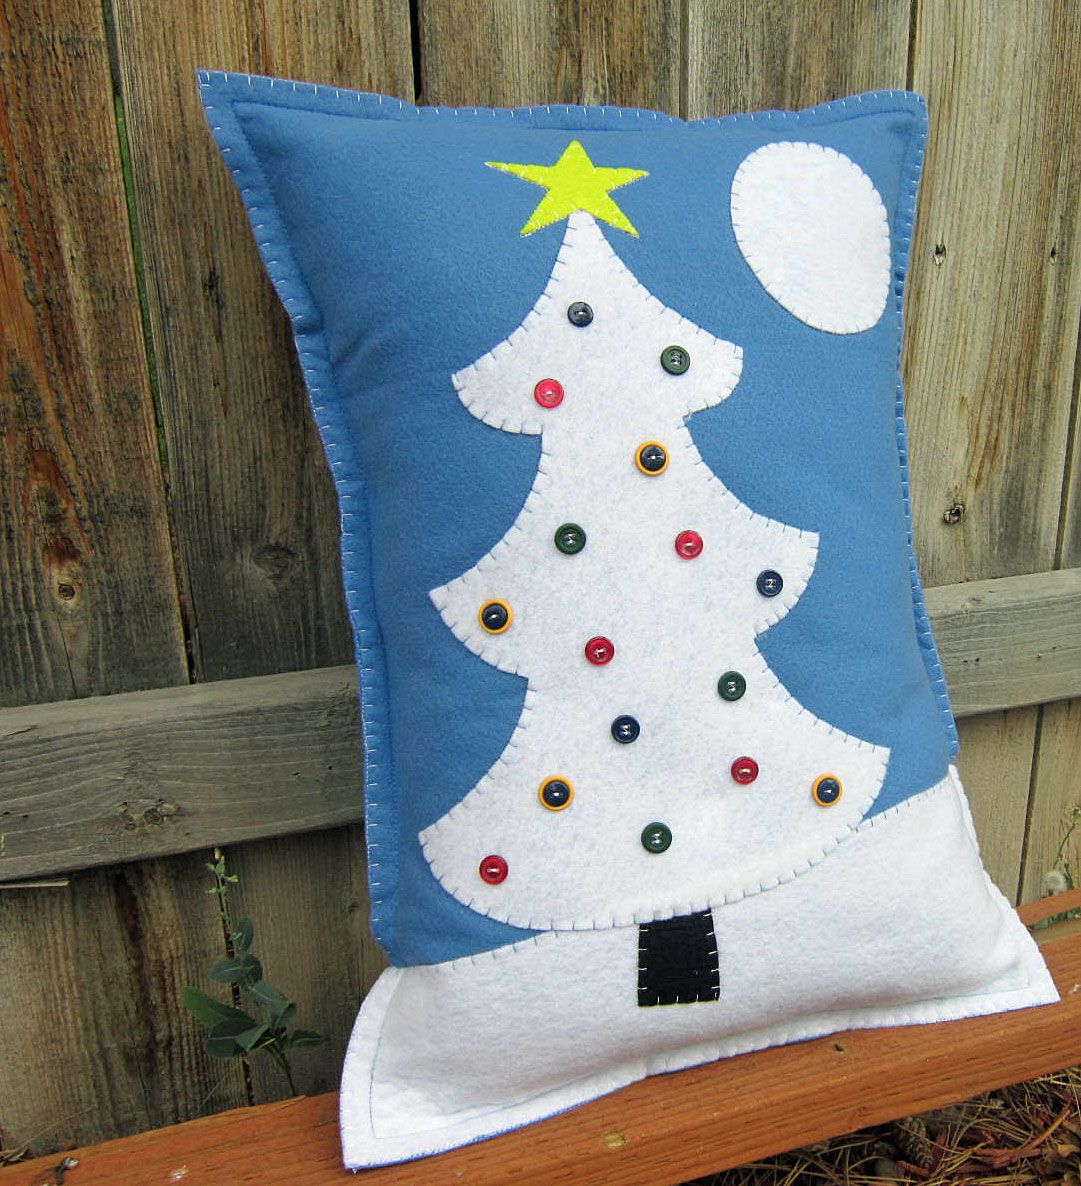 52 Pillows  - #38 - Christmas Tree | by TiffinyDesigns